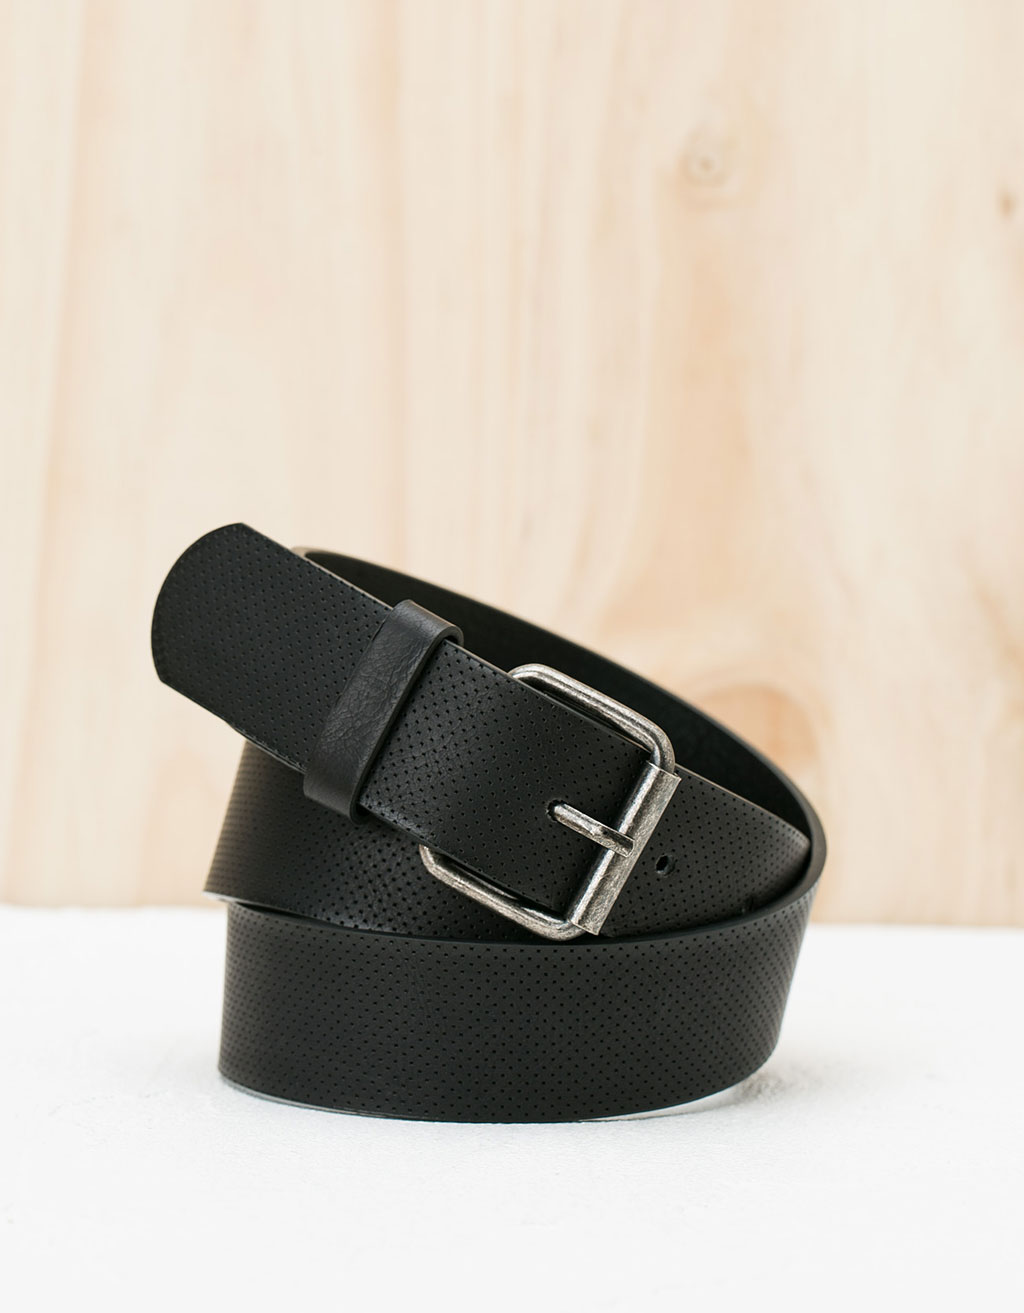 Perforated micro belt